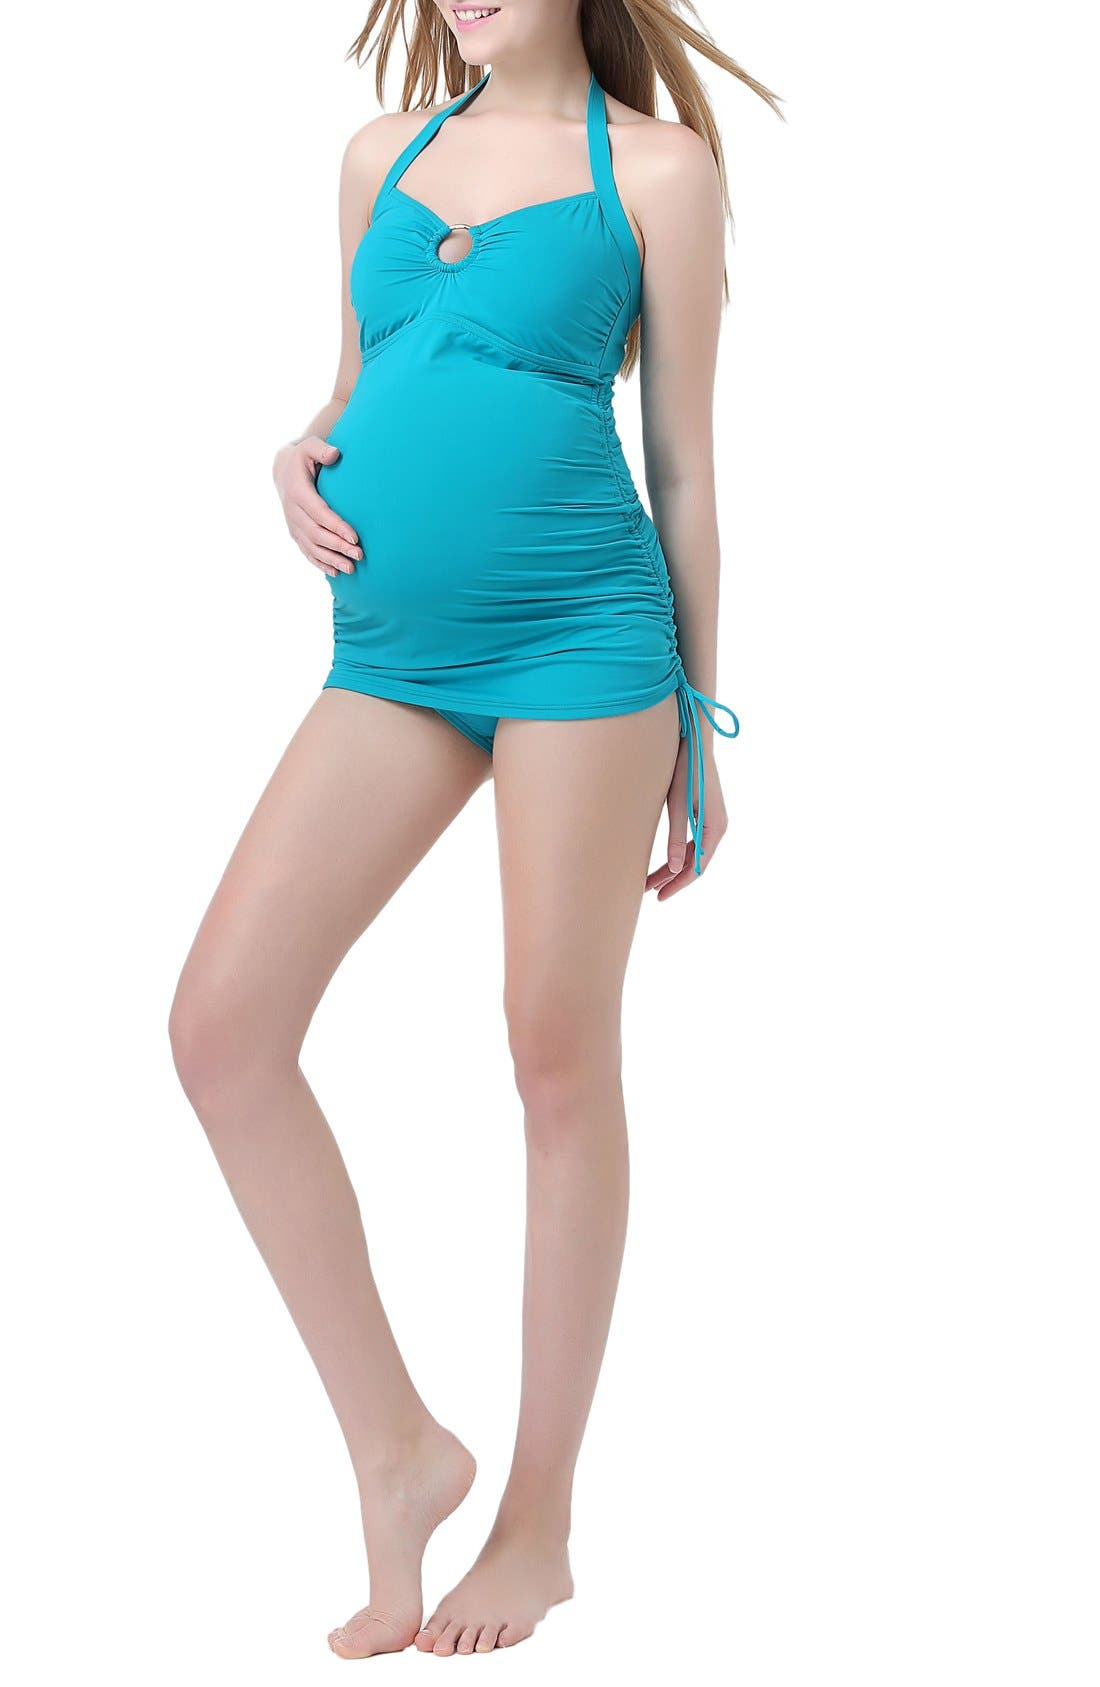 'Chloe' Maternity Two-Piece Tankini Swimsuit,                         Main,                         color, Teal